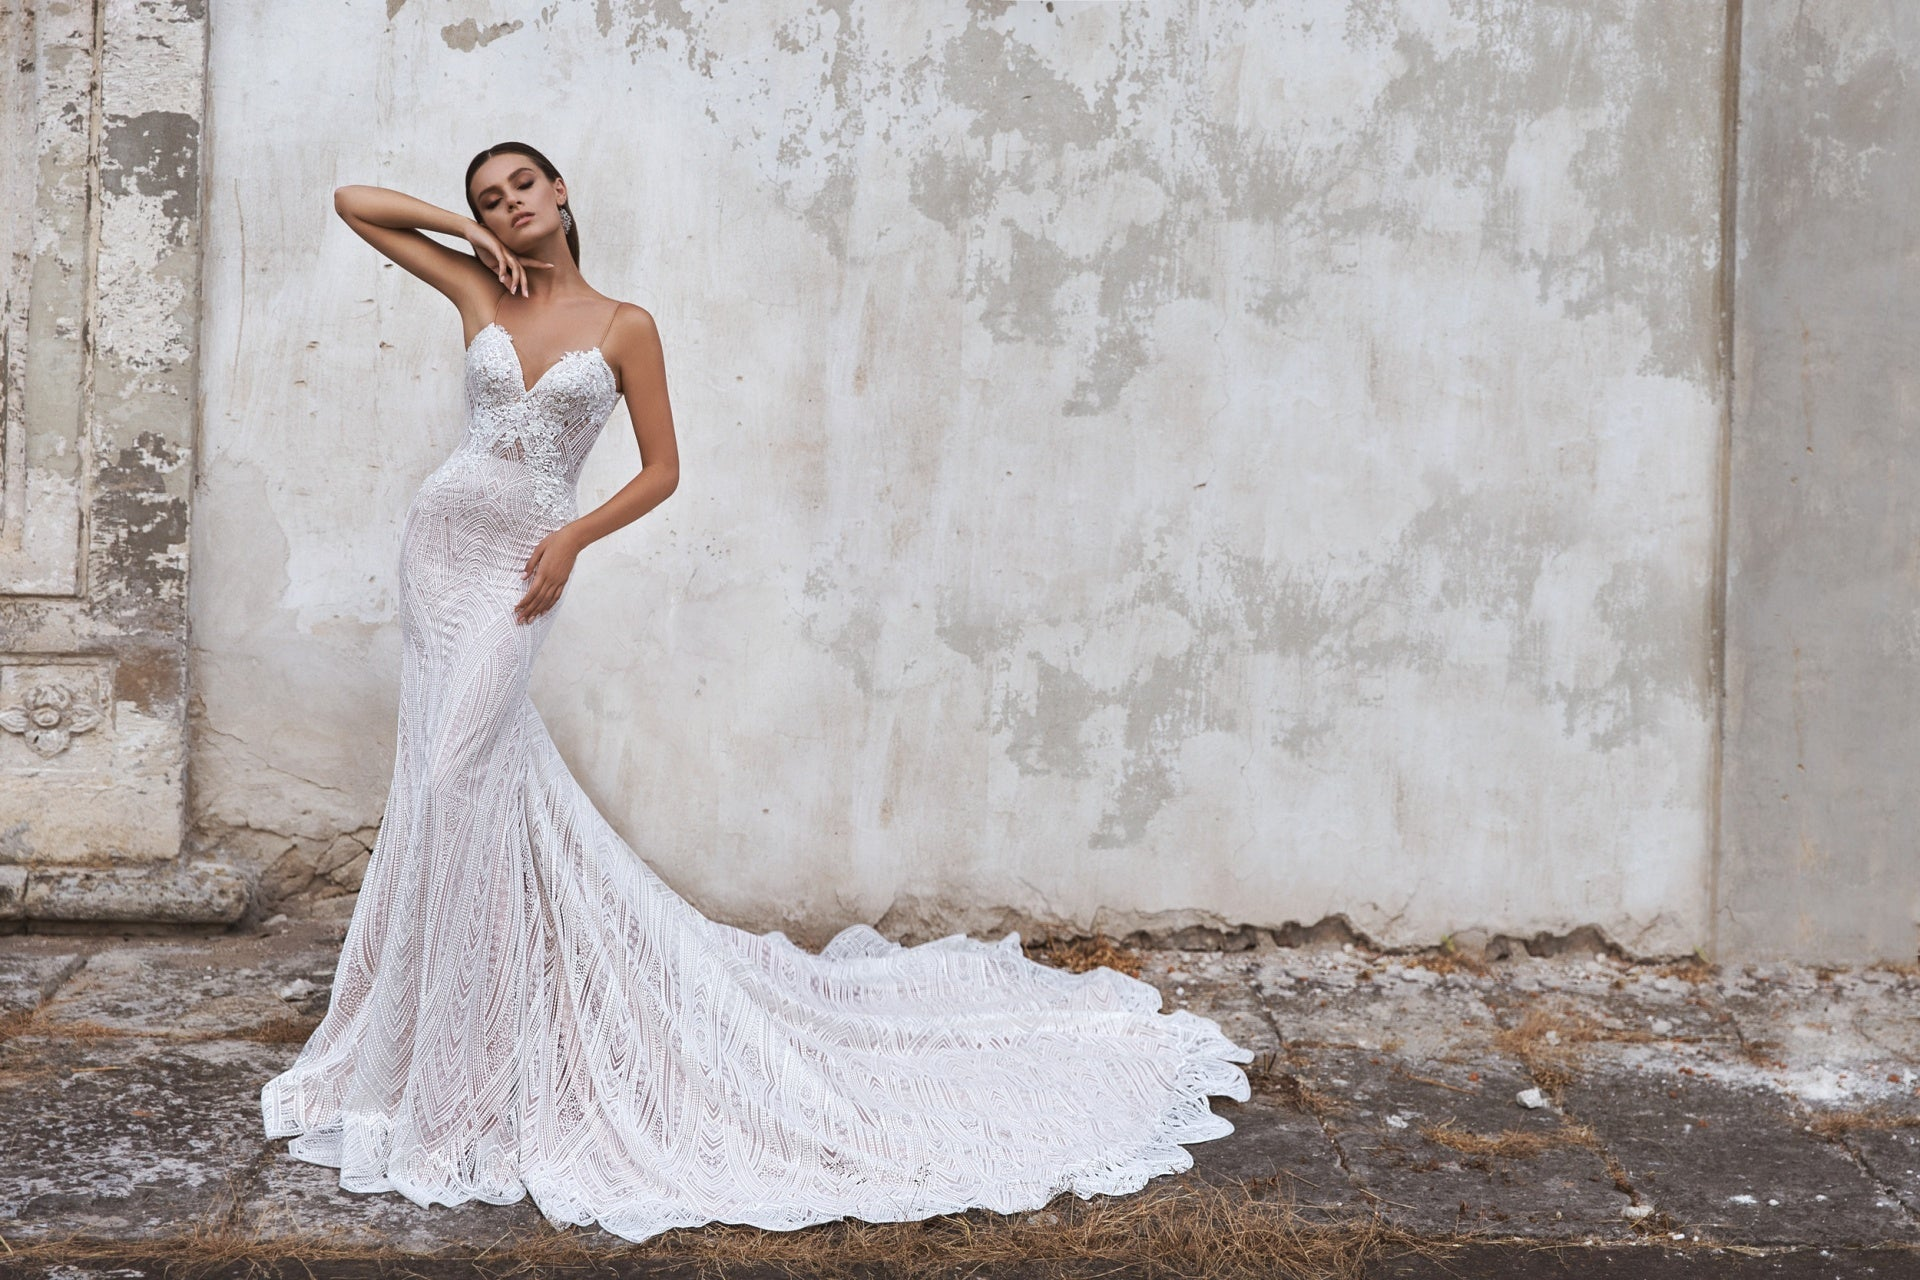 This collection offers a unique approach to garment construction, offering a wide variety of unconventional silhouettes, necklines, and colors, including icy blues and multi-tone ivories.